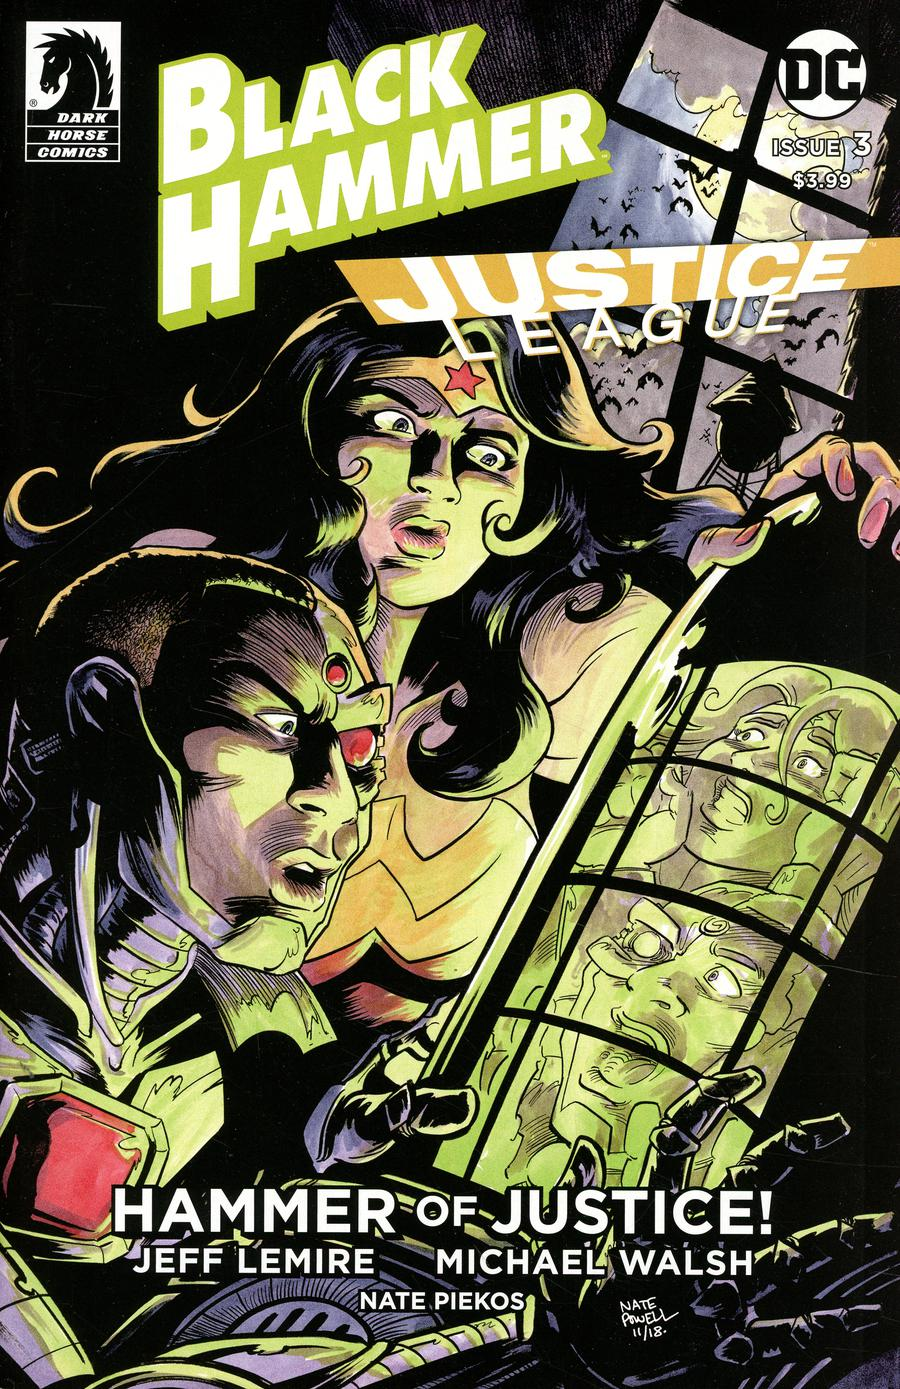 Black Hammer Justice League Hammer Of Justice #3 Cover B Variant Nate Powell Cover